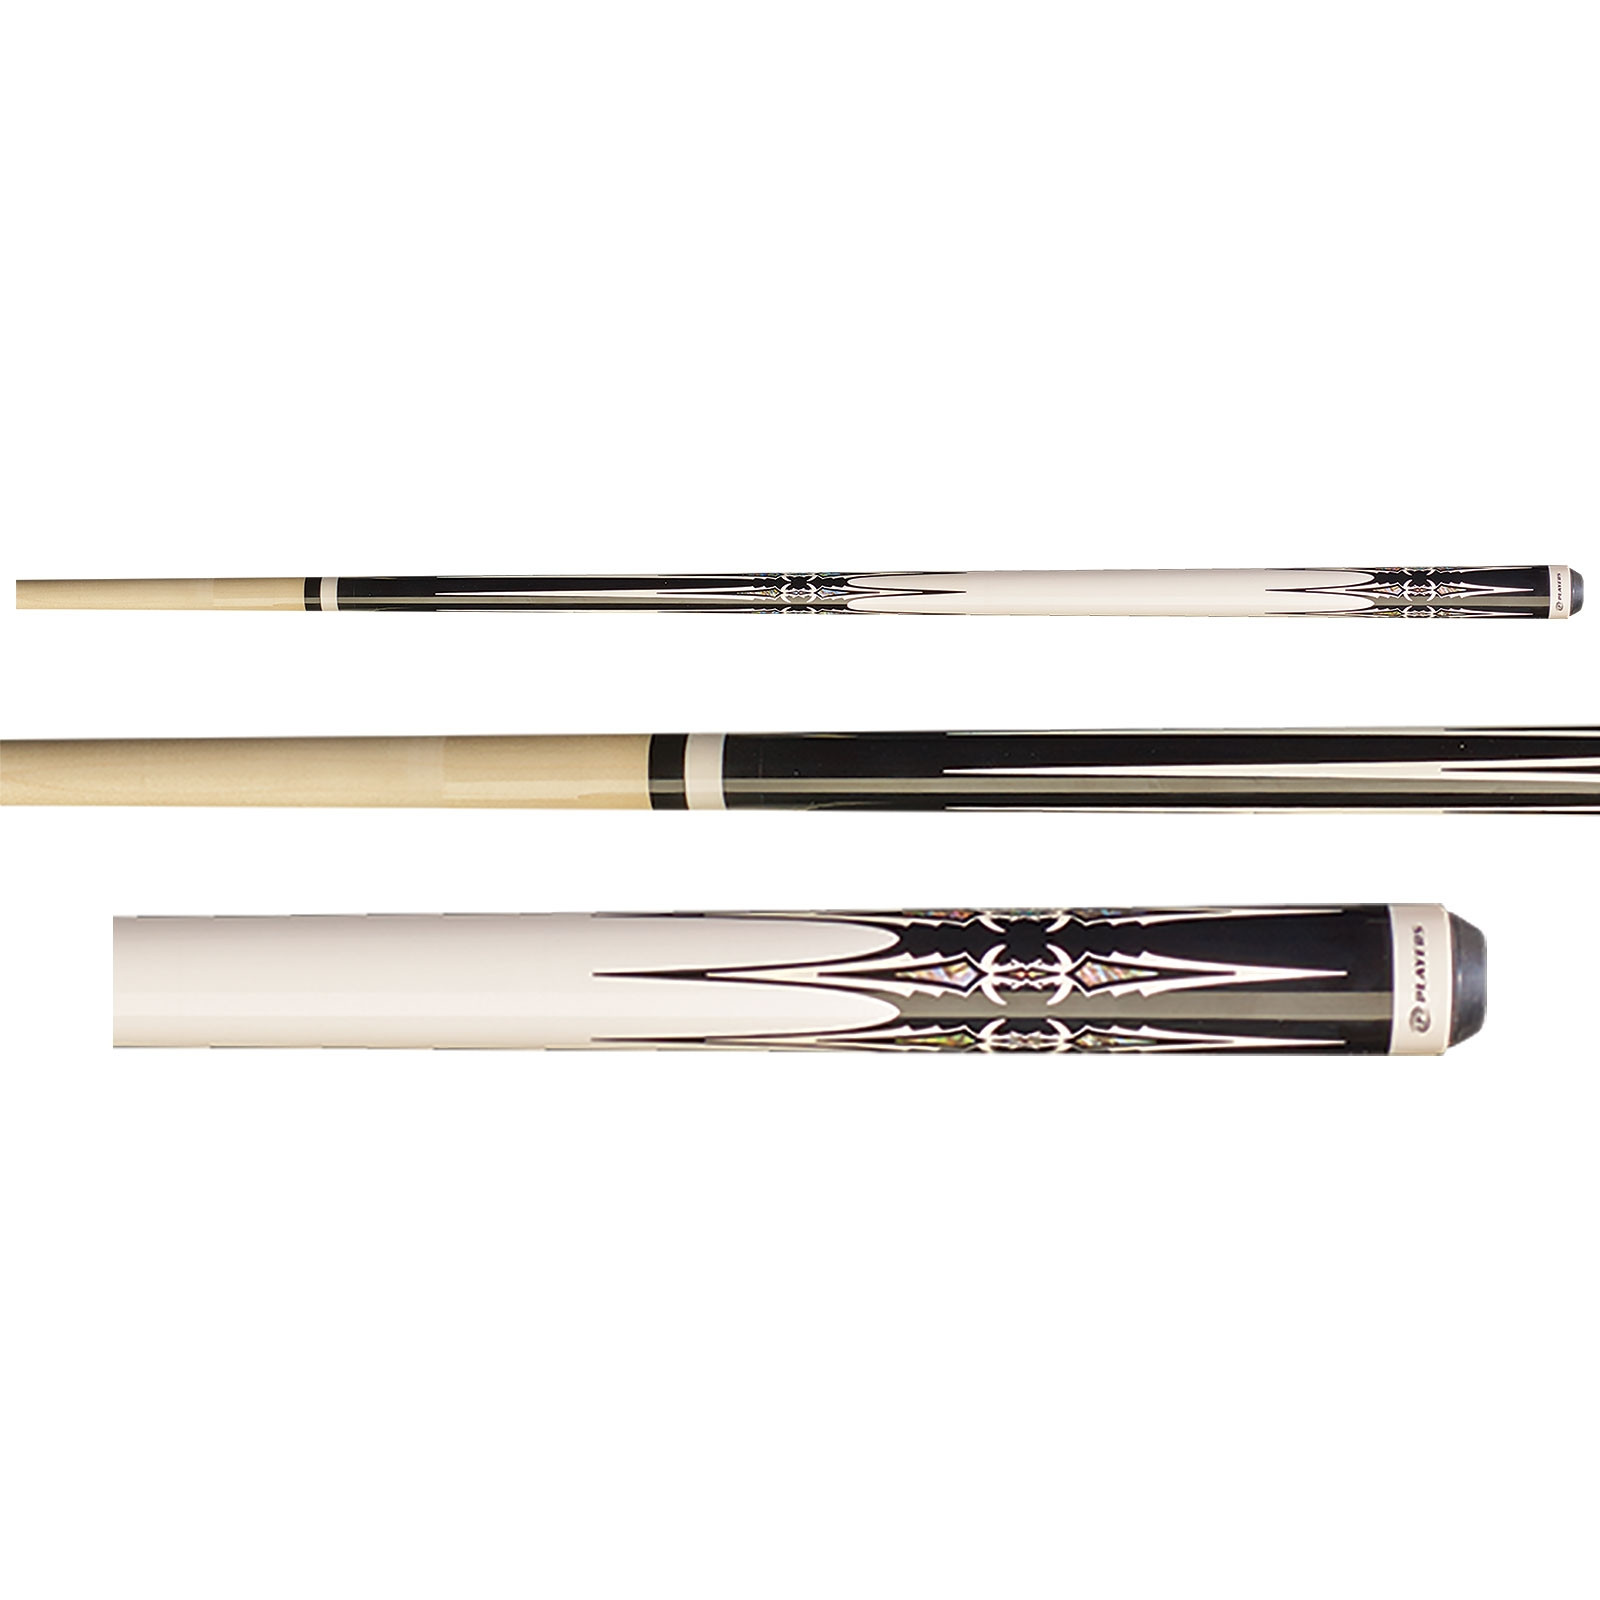 Players G-4112 Black Pool Cue Stick